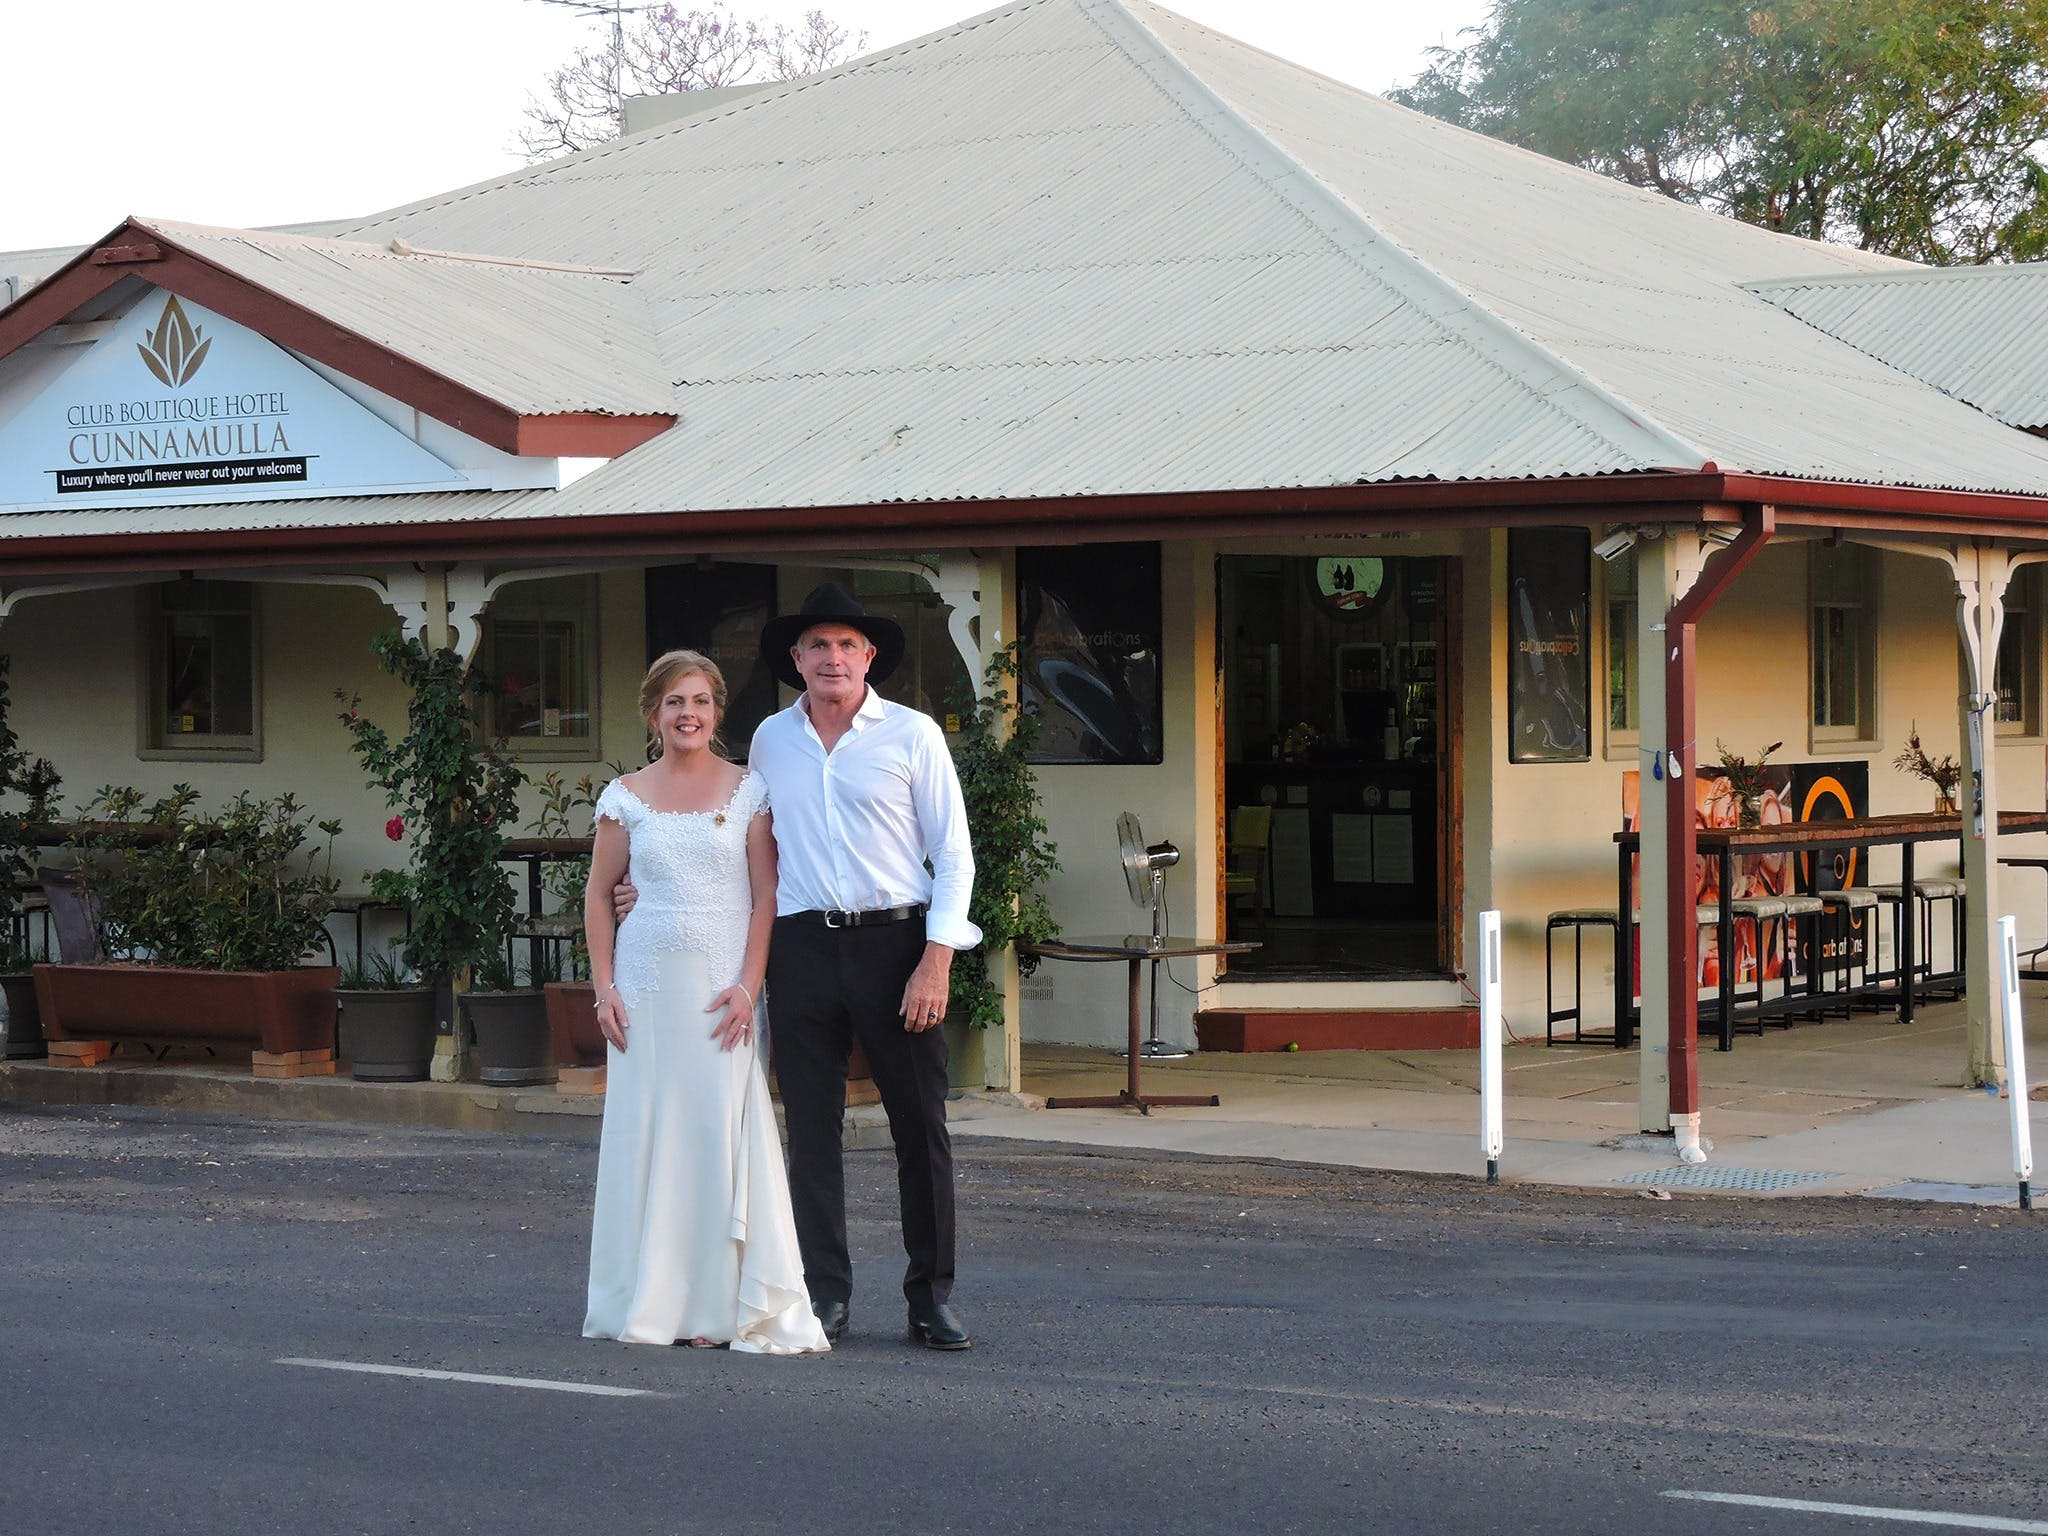 Club Boutique Hotel Cunnamulla - Perisher Accommodation